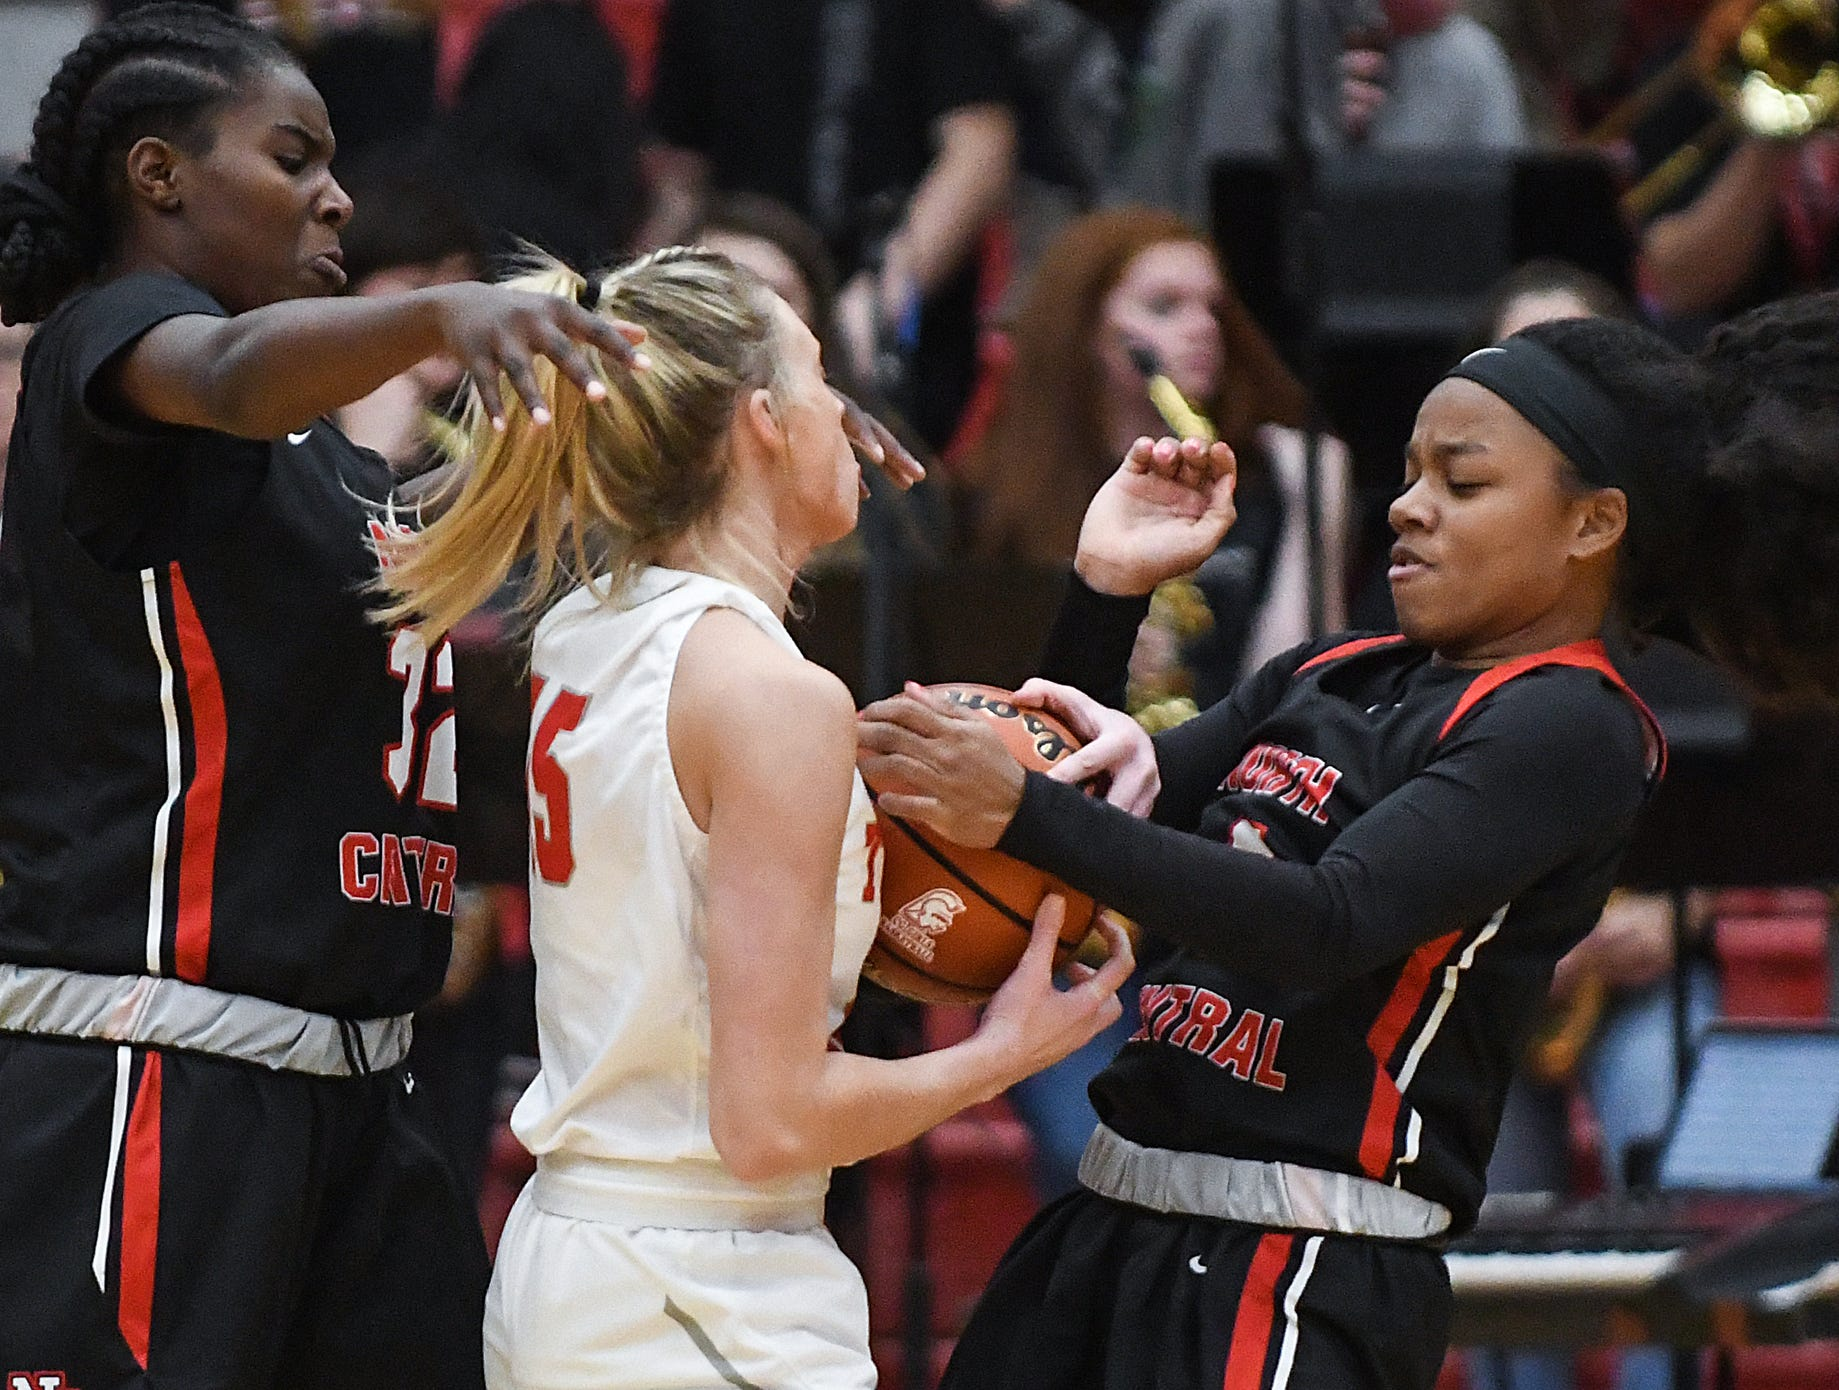 Center Grove Trojans forward Kylie Storm (15) and North Central Panthers guard Savaya Brockington (4) grapple over the ball in the first half of the game at Center Grove High School in Greenwood, Ind., Thursday, Jan. 10, 2019. Center Grove defeated North Central, 51-44.